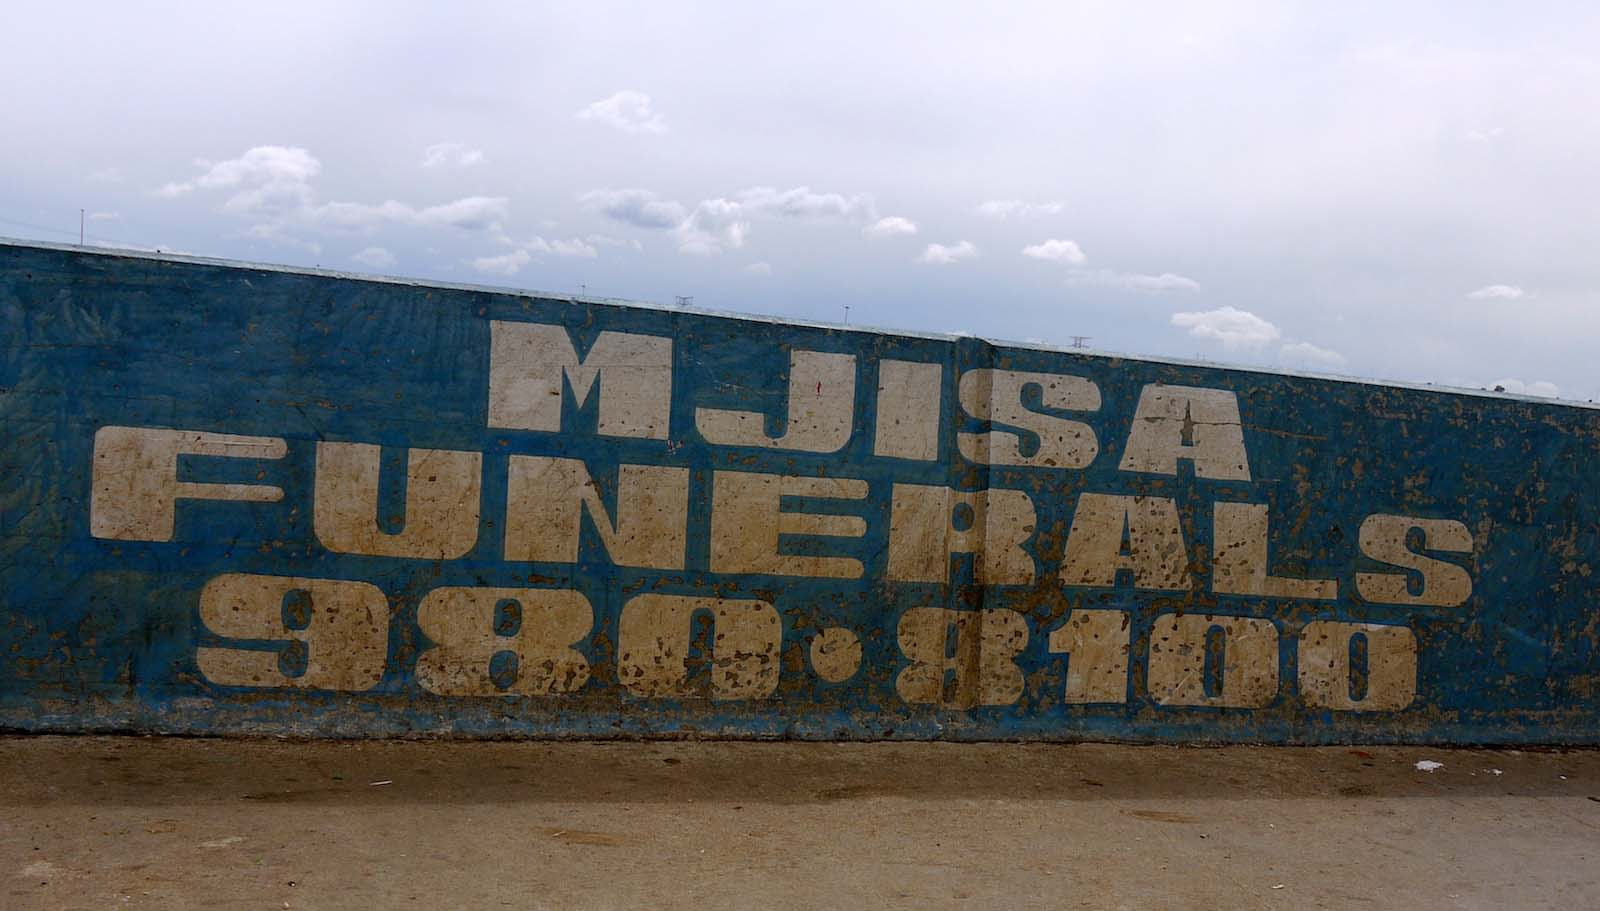 Handmade signs in Soweto by Typofonderie